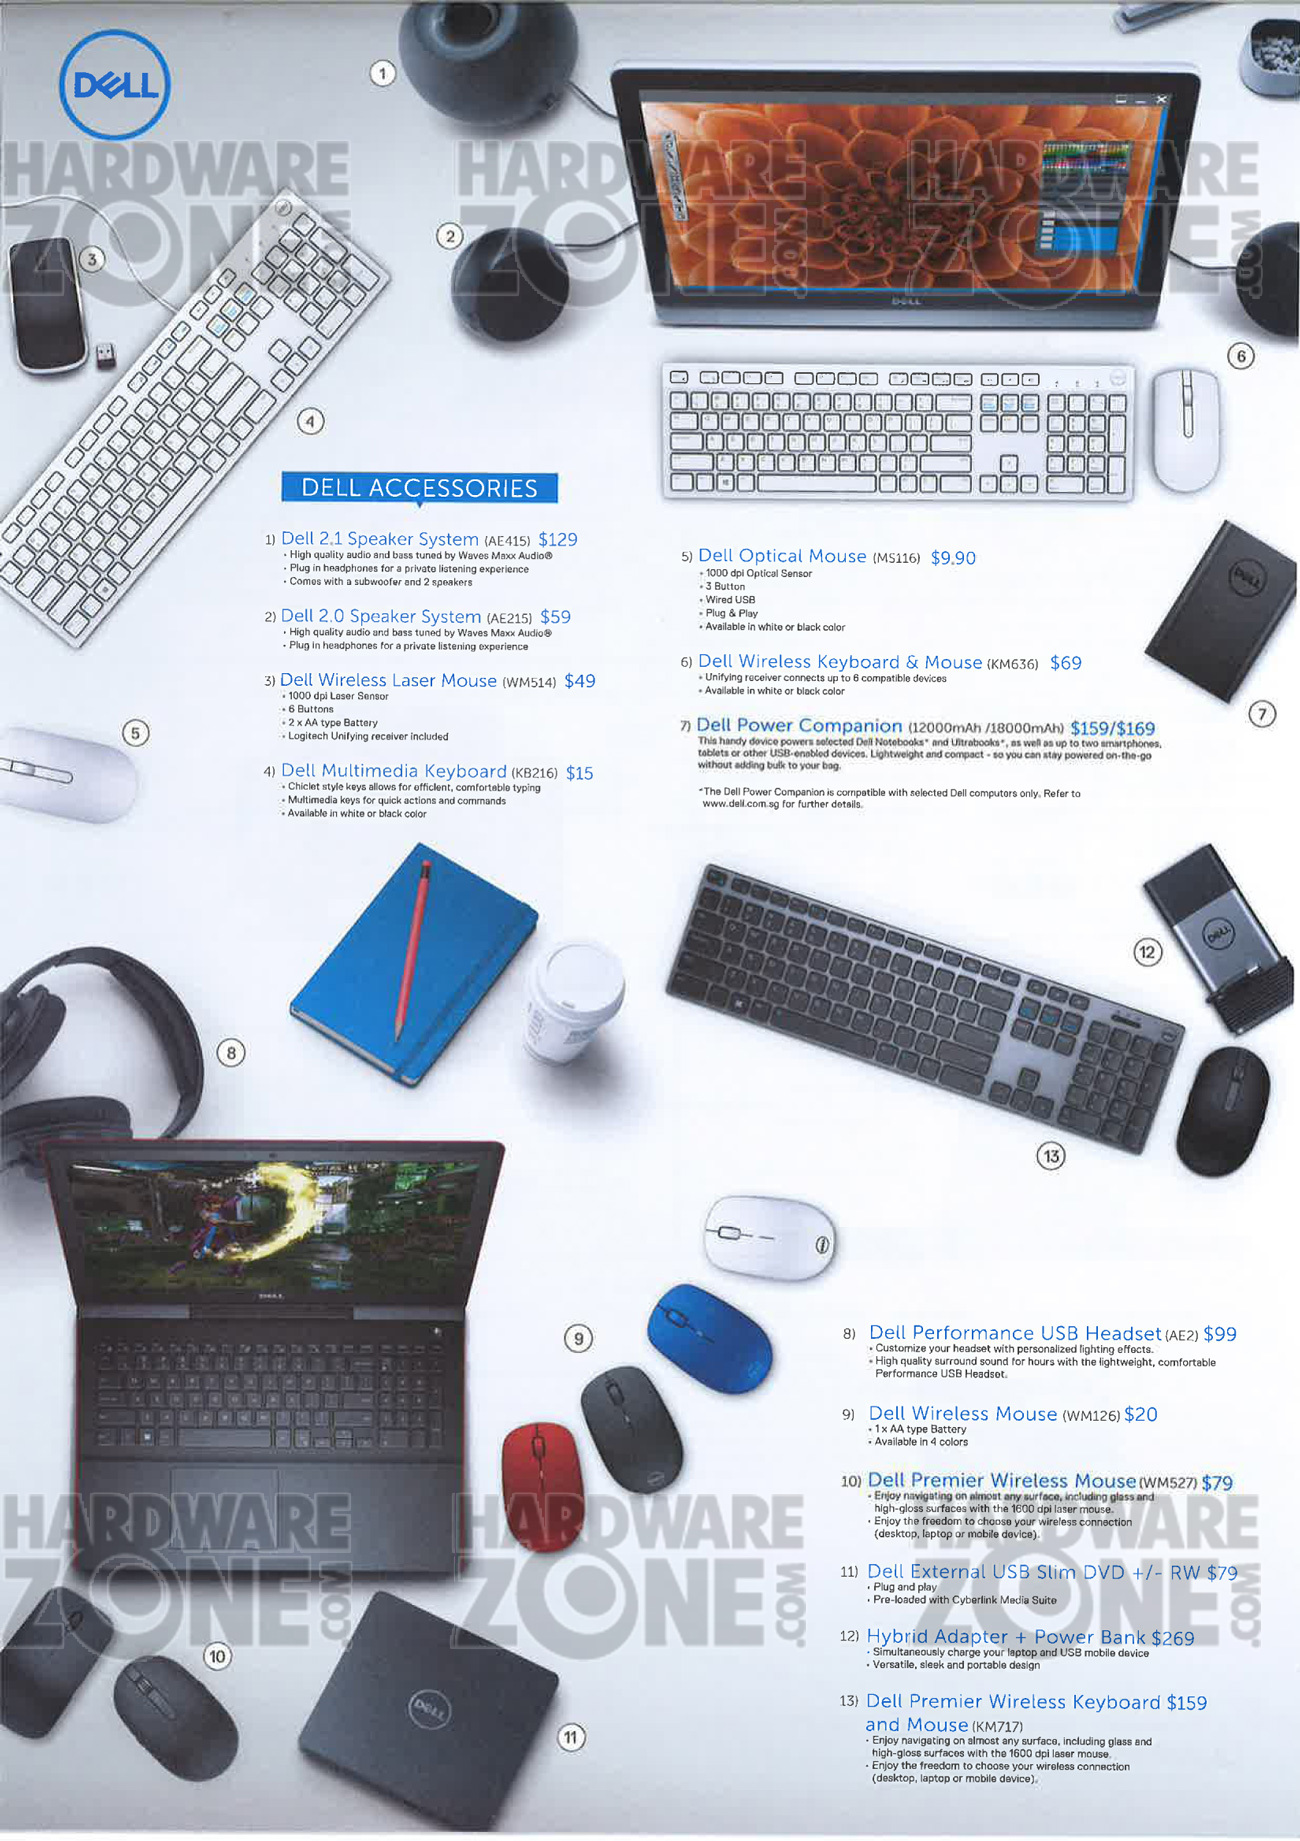 Dell Notebooks - Pg 6 Brochures from IT Show 2018 Singapore on Tech